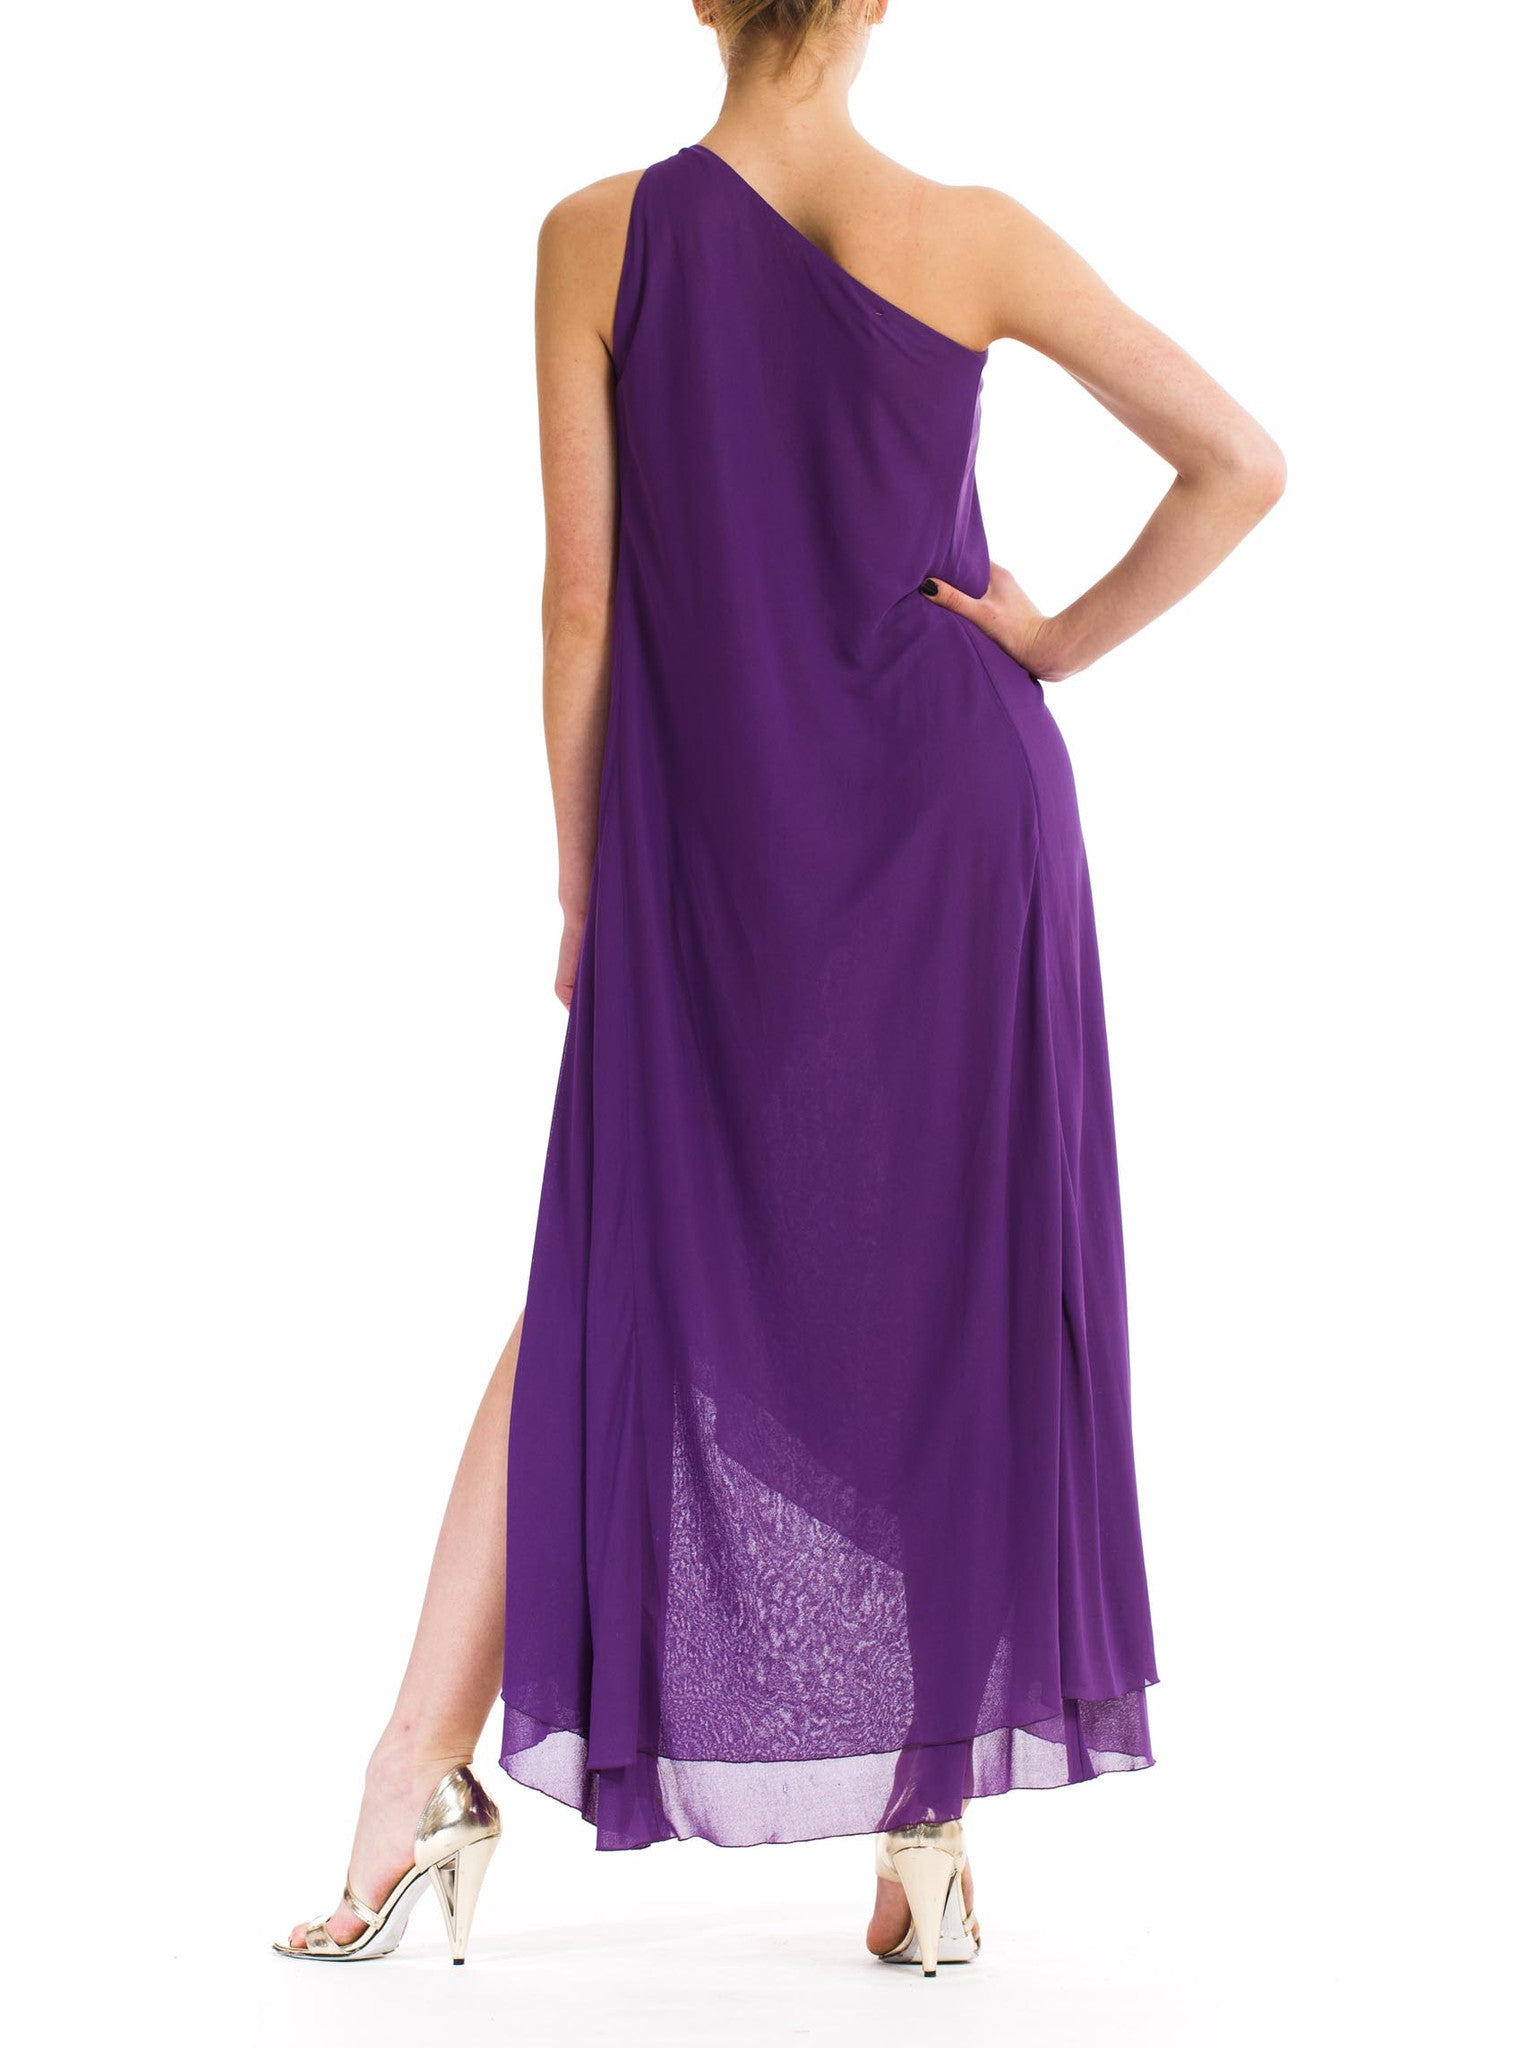 1970S JONATHAN HITCHCOCK Purple Rayon & Nylon Chiffon Jersey One Shoulder Disco Wrap Dress With Crystals